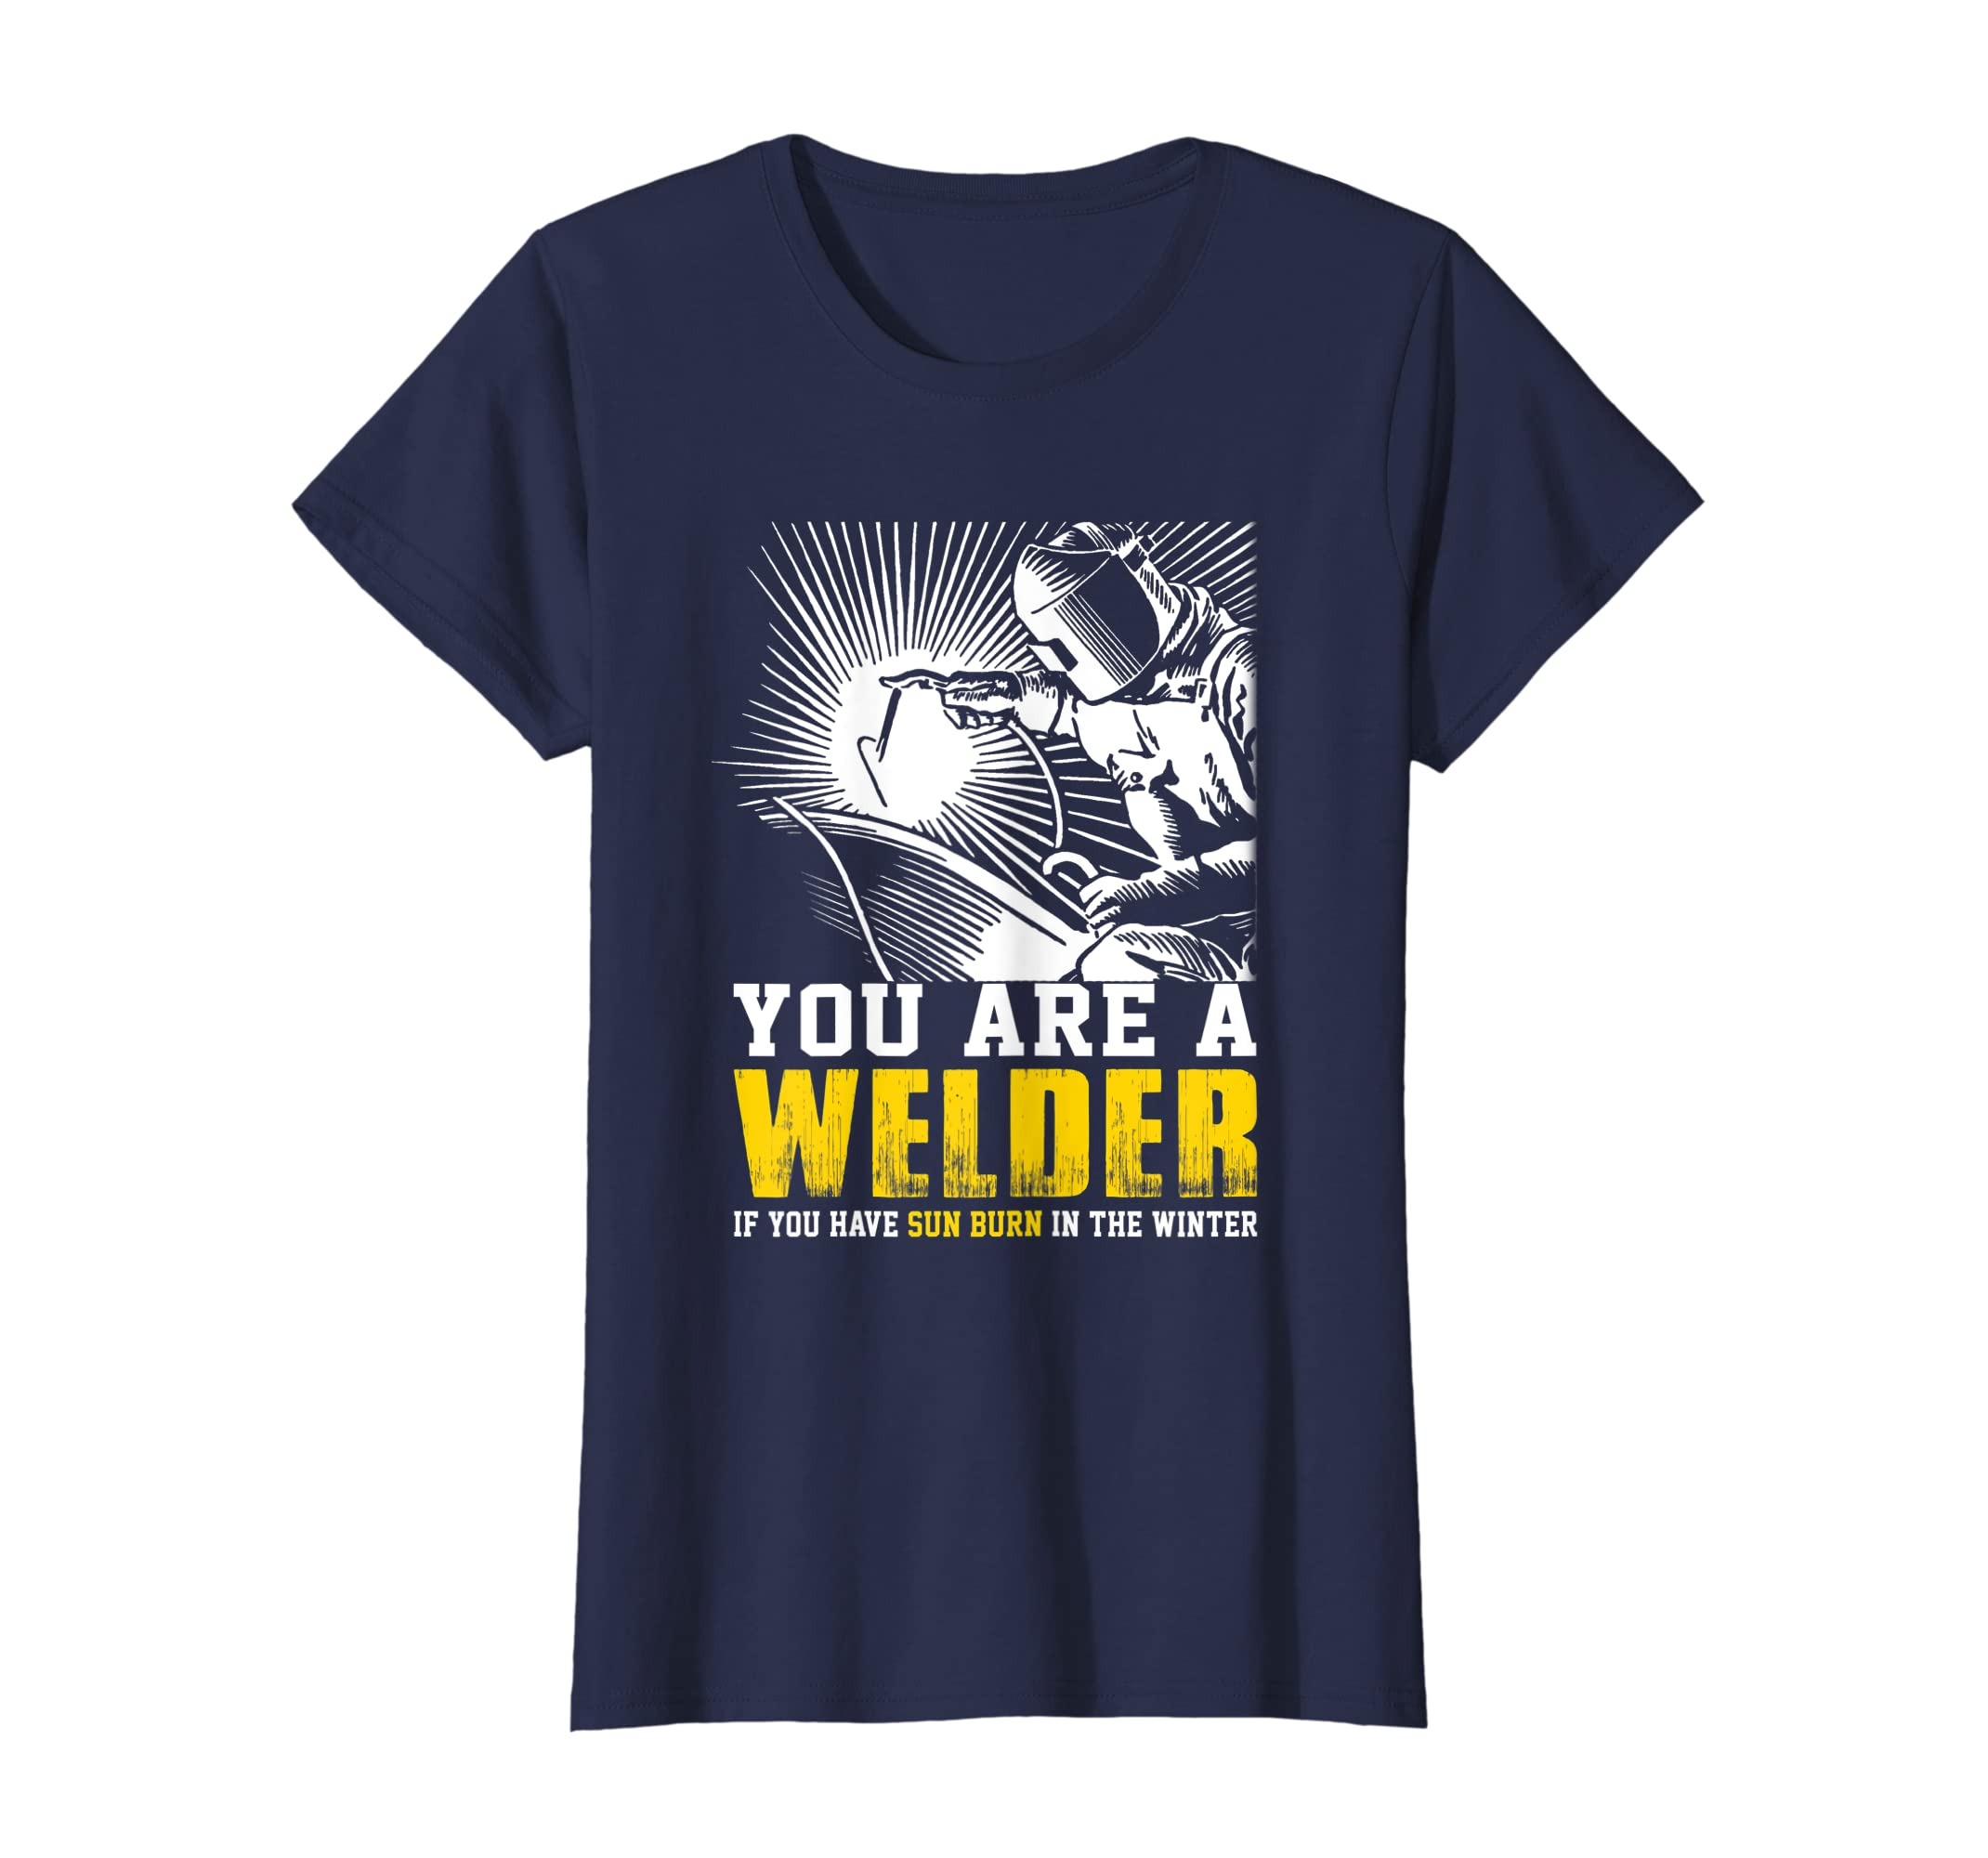 a2bb45e44 Amazon.com: You Are A Welder If You Have Sun Burn In The Winter: Clothing